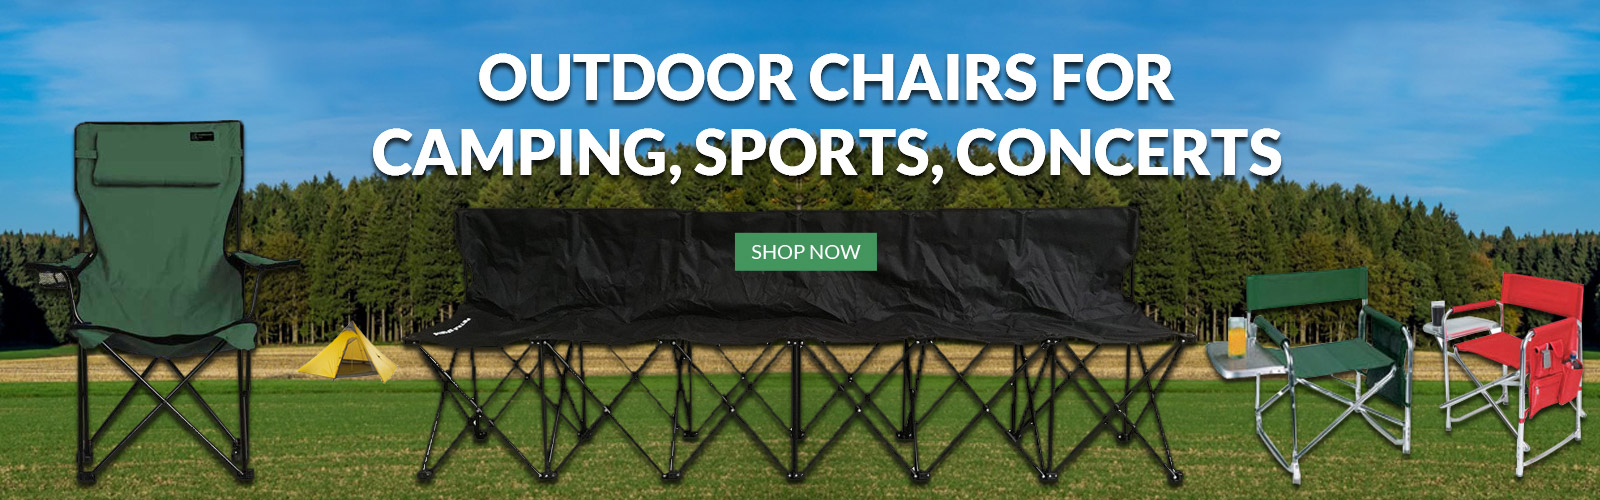 Outdoor chairs childrens chair lawn chairs big lots big for Outdoor furniture big w